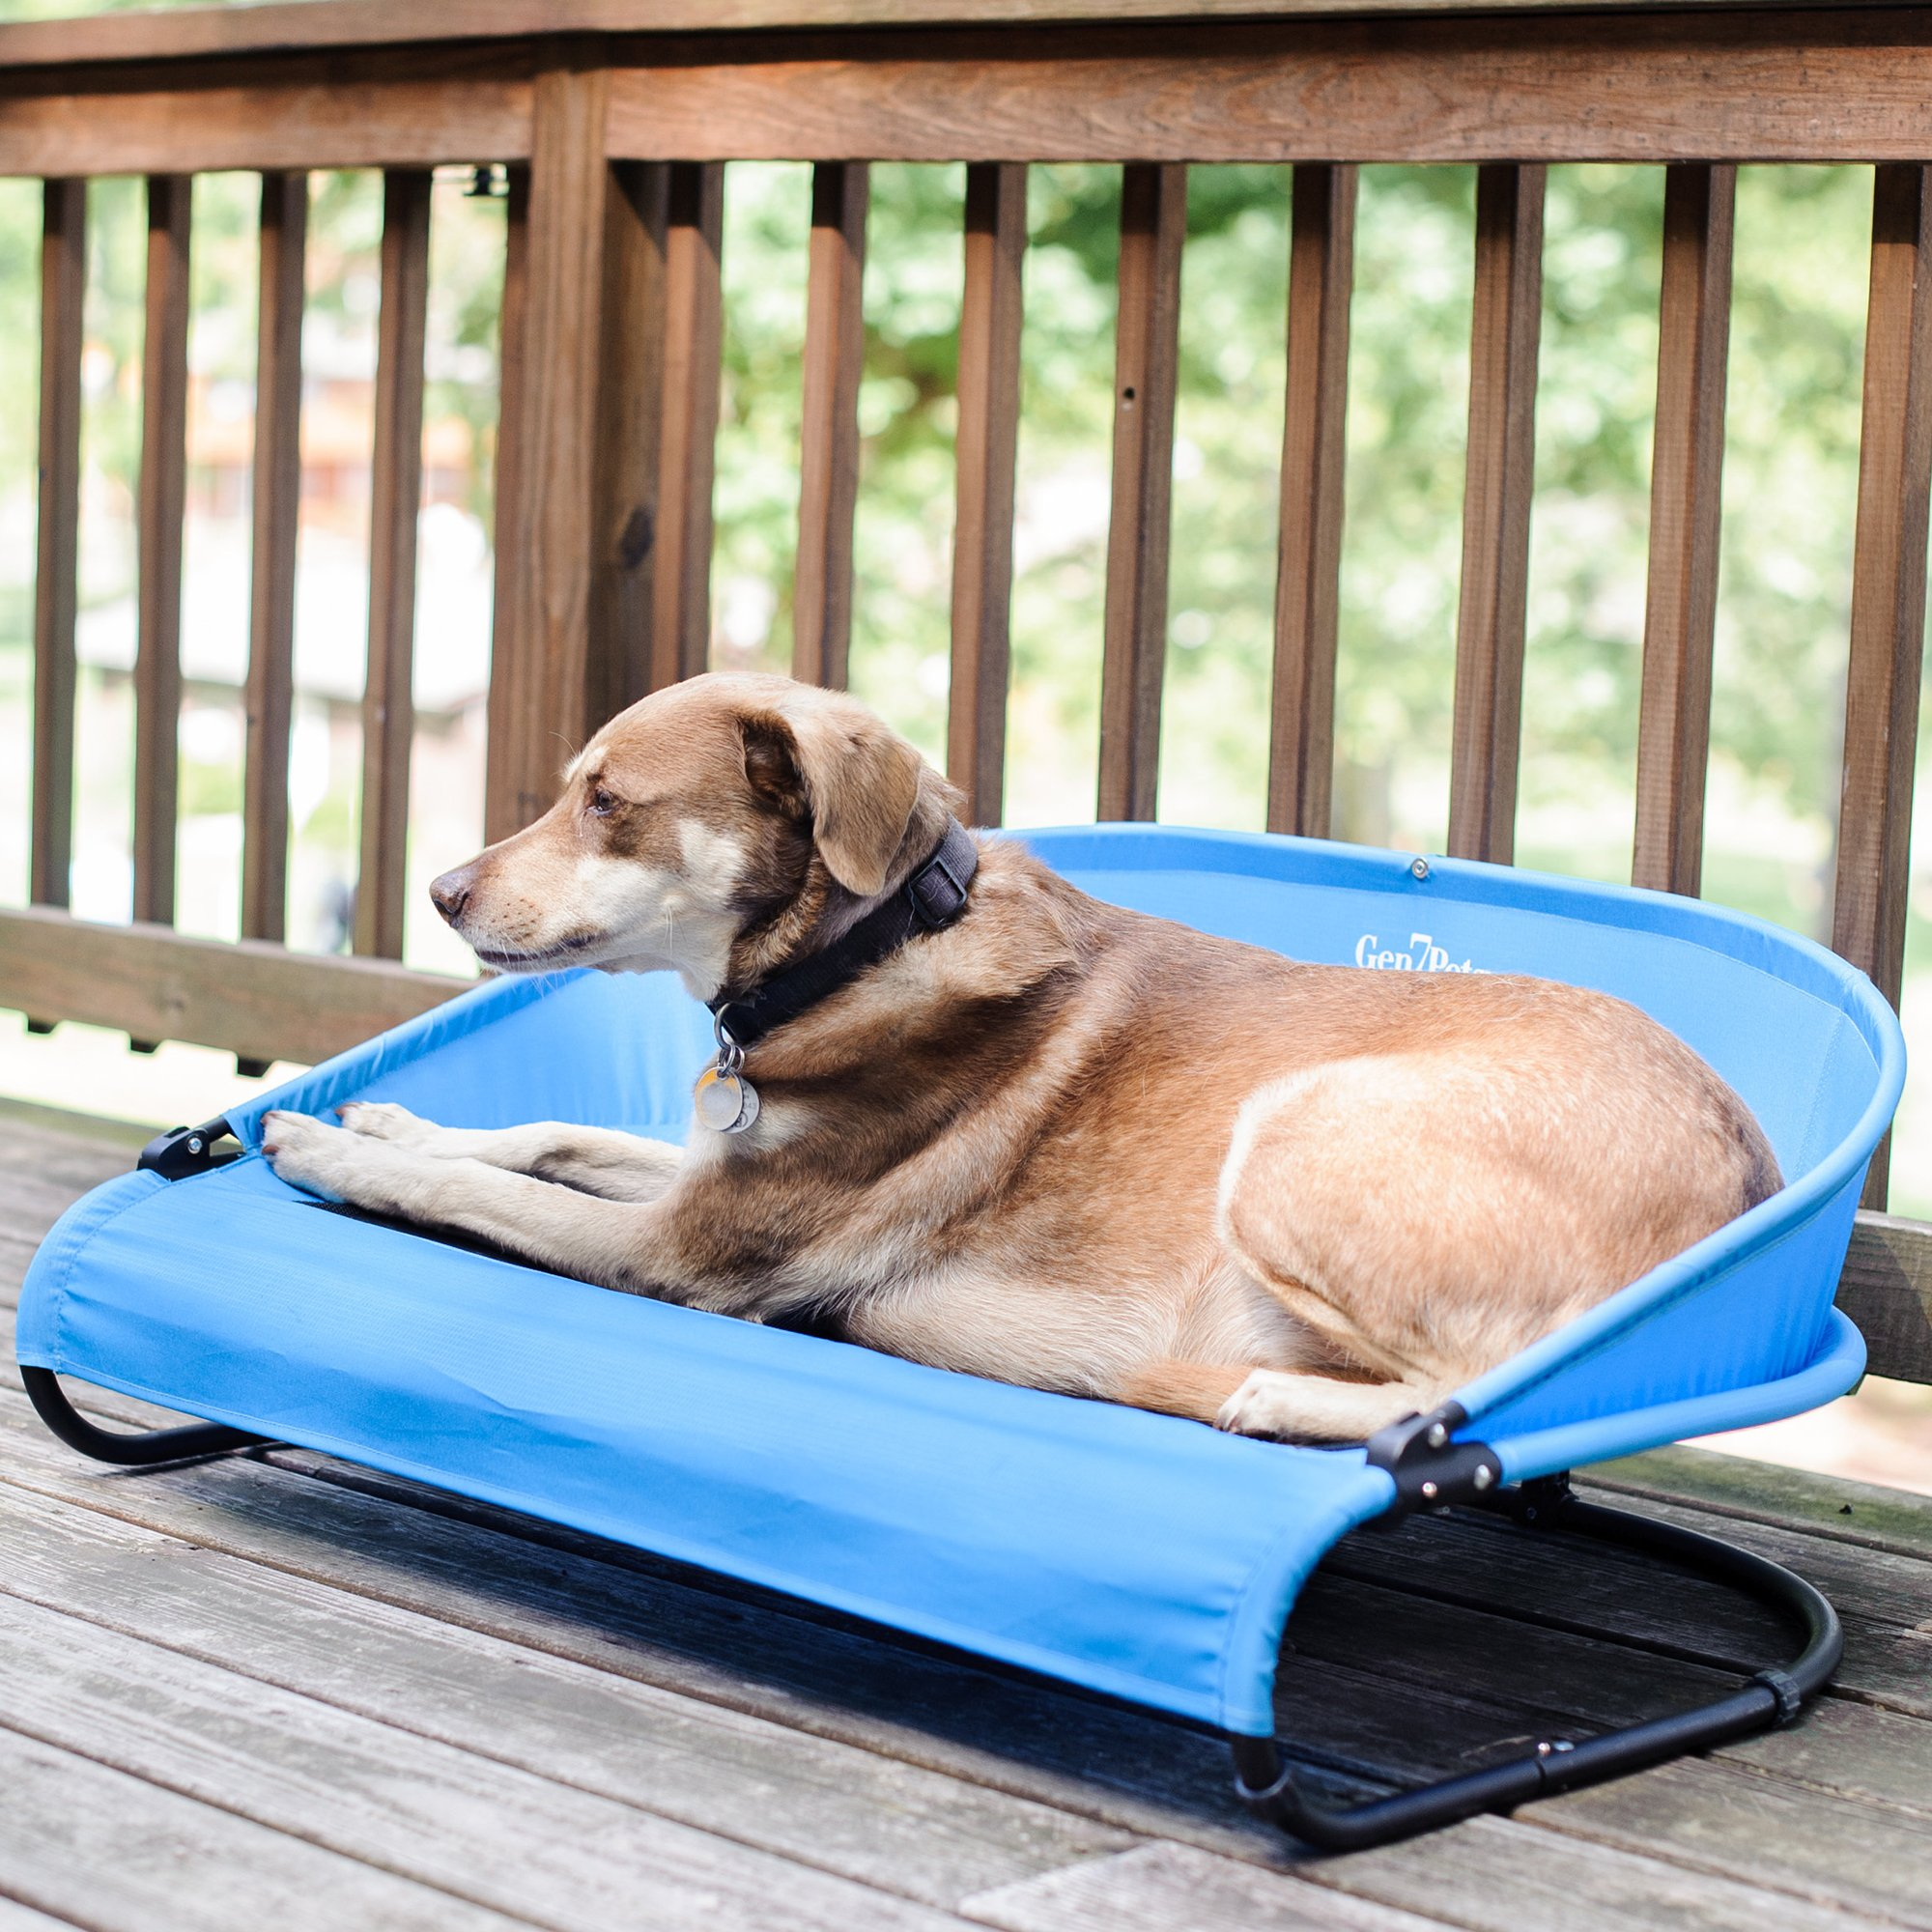 Gen7Pets Cool Air Cot Pet Bed for Dogs and Cats 90lbs – Curved Raised Back, Air Flow for Comfort and Portable for Travel